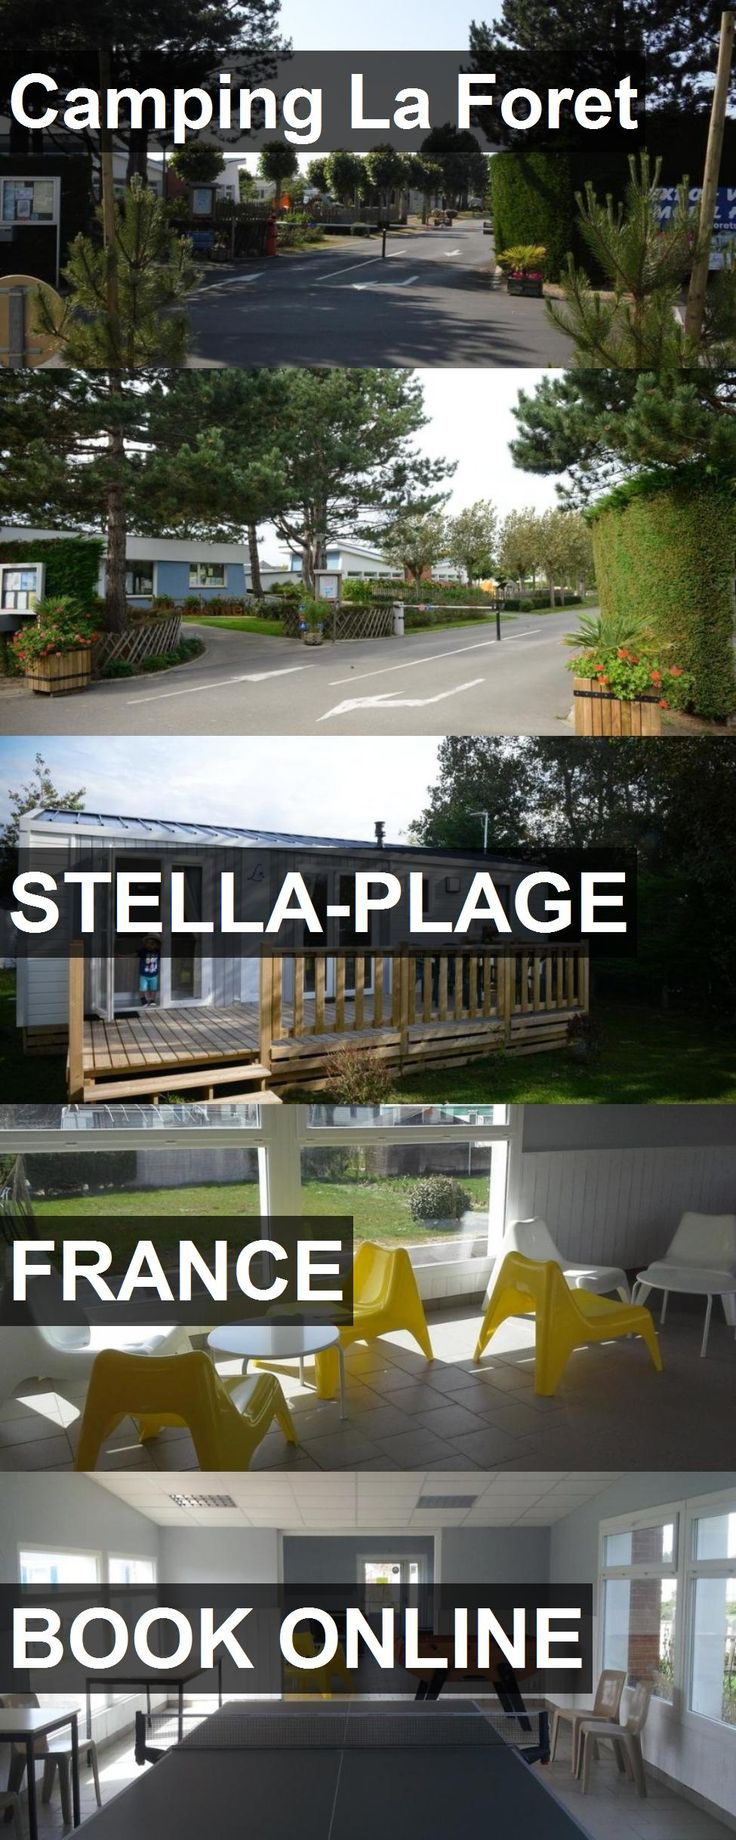 Hotel Camping La Foret in Stella-Plage, France. For more information, photos, reviews and best prices please follow the link. #France #Stella-Plage #CampingLaForet #hotel #travel #vacation